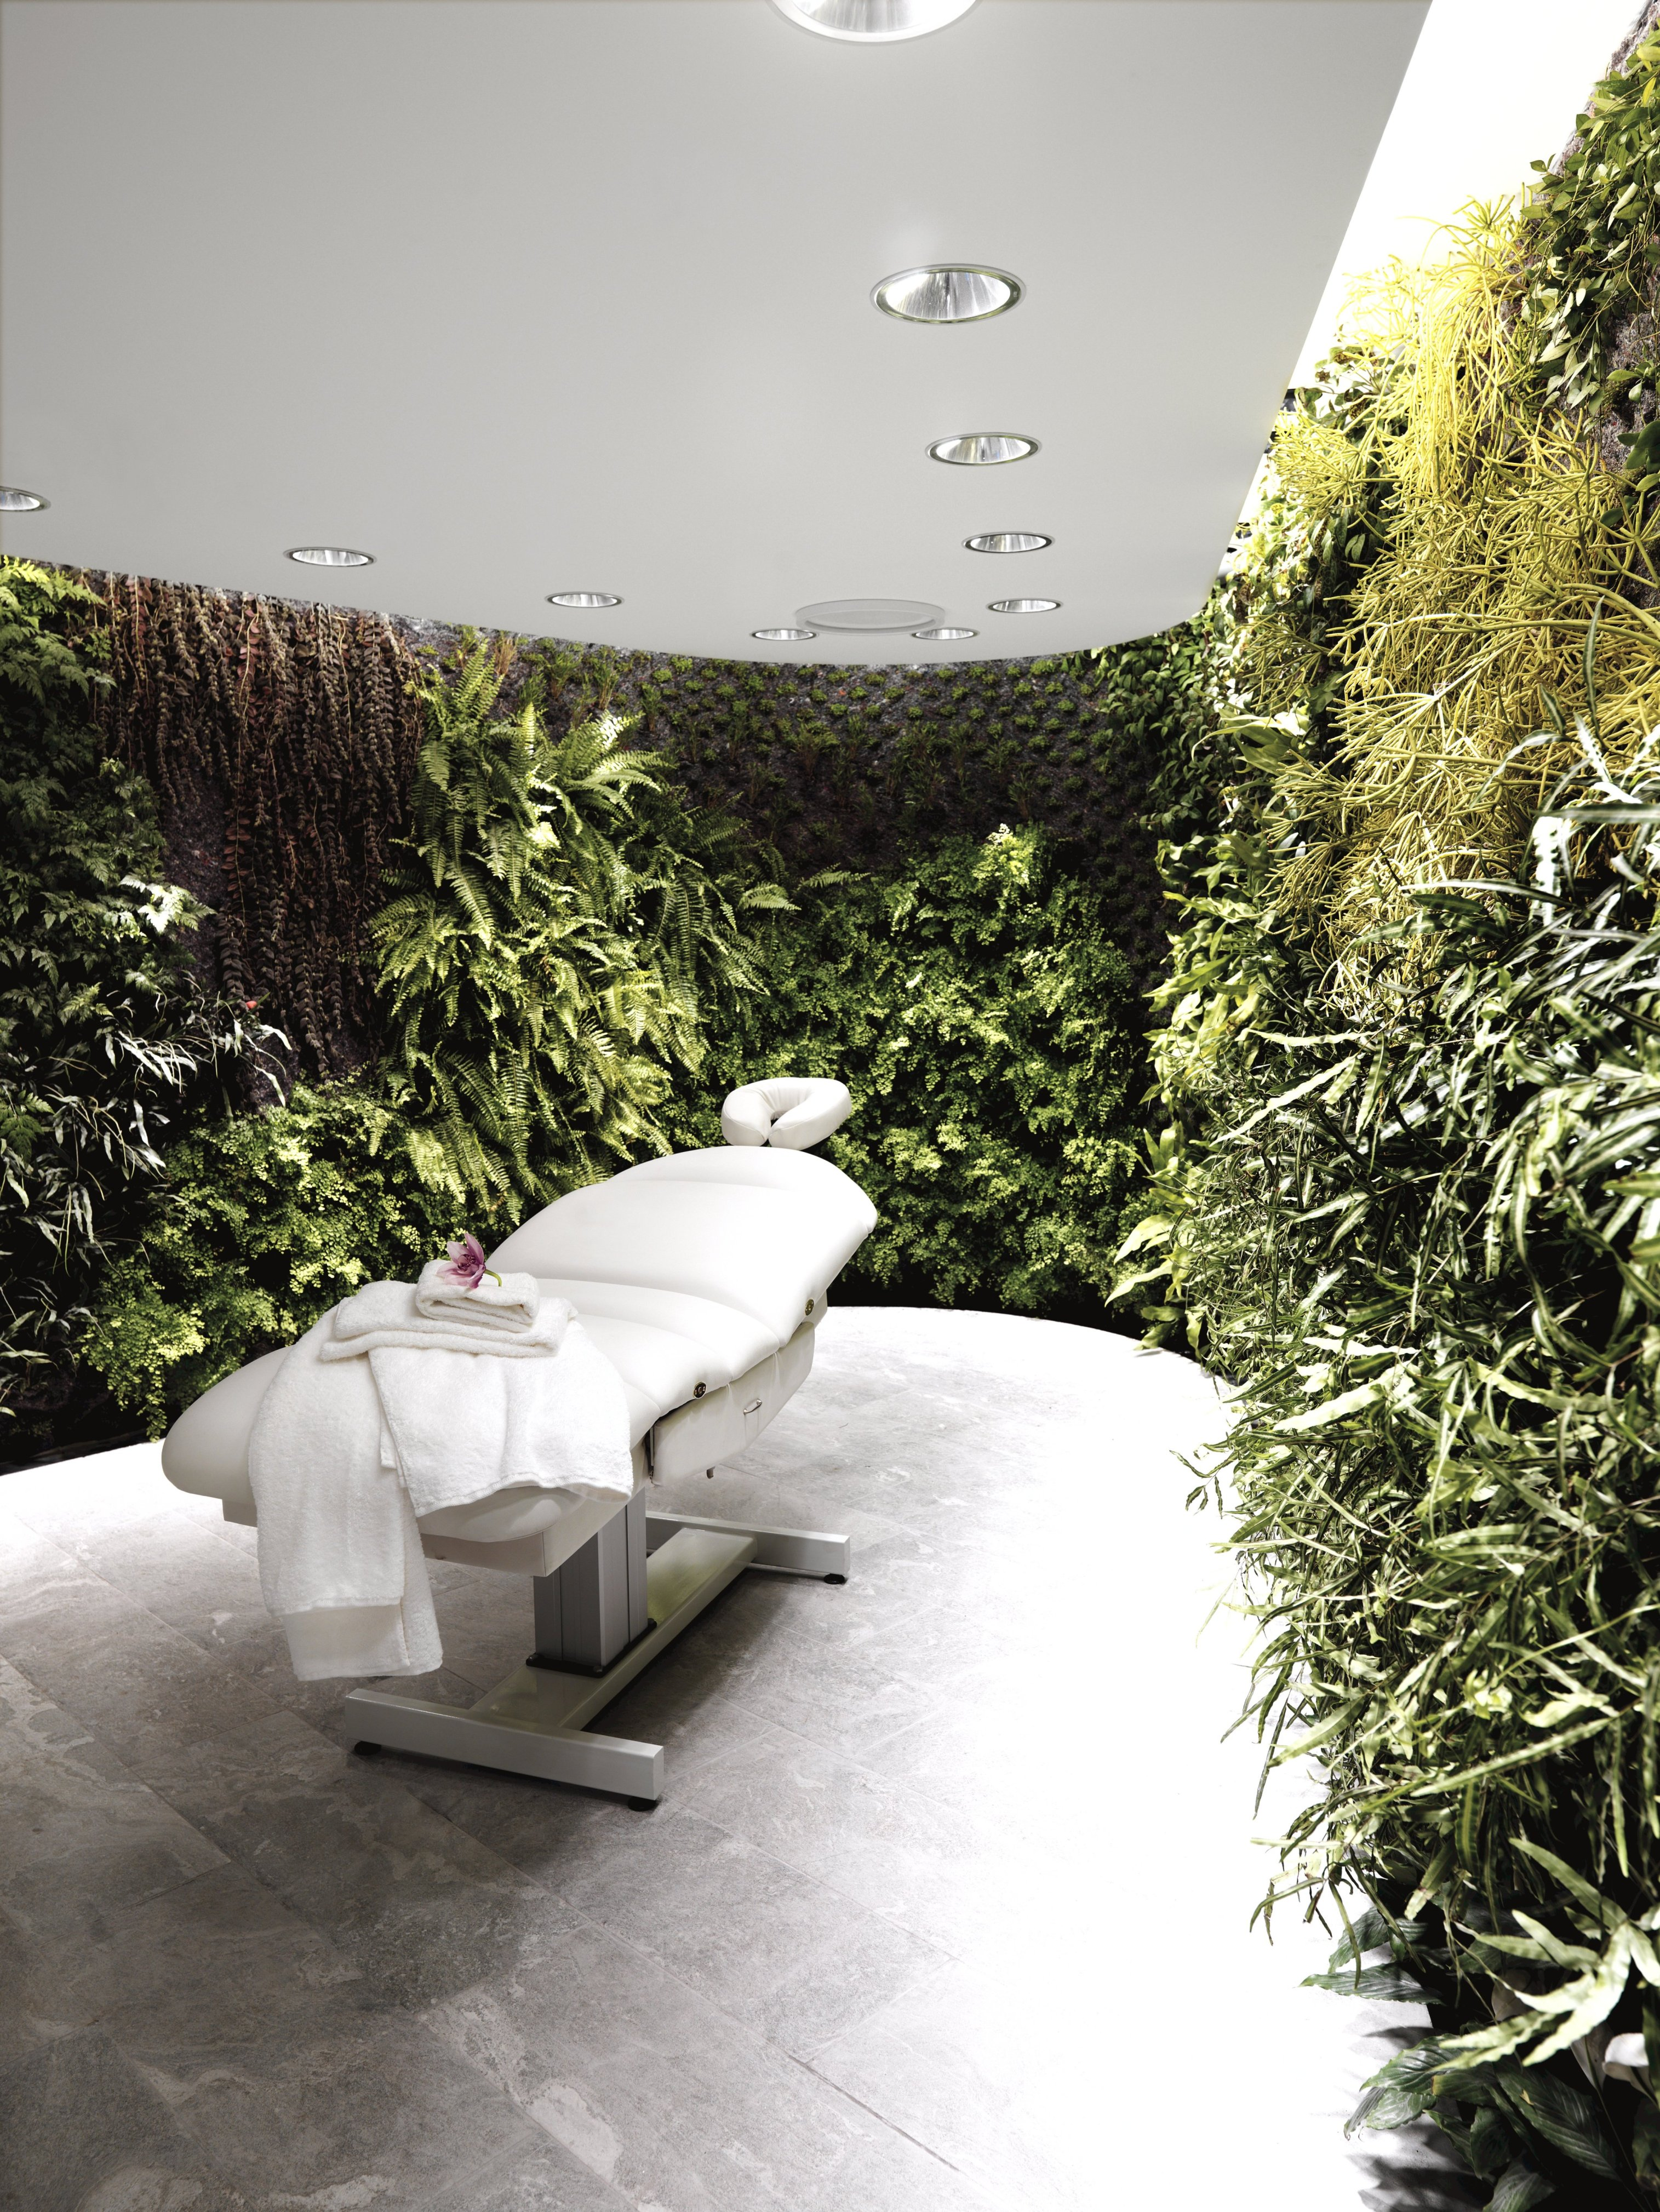 This image: A look inside a treatment room at a Qantas First lounge. Source: Qantas